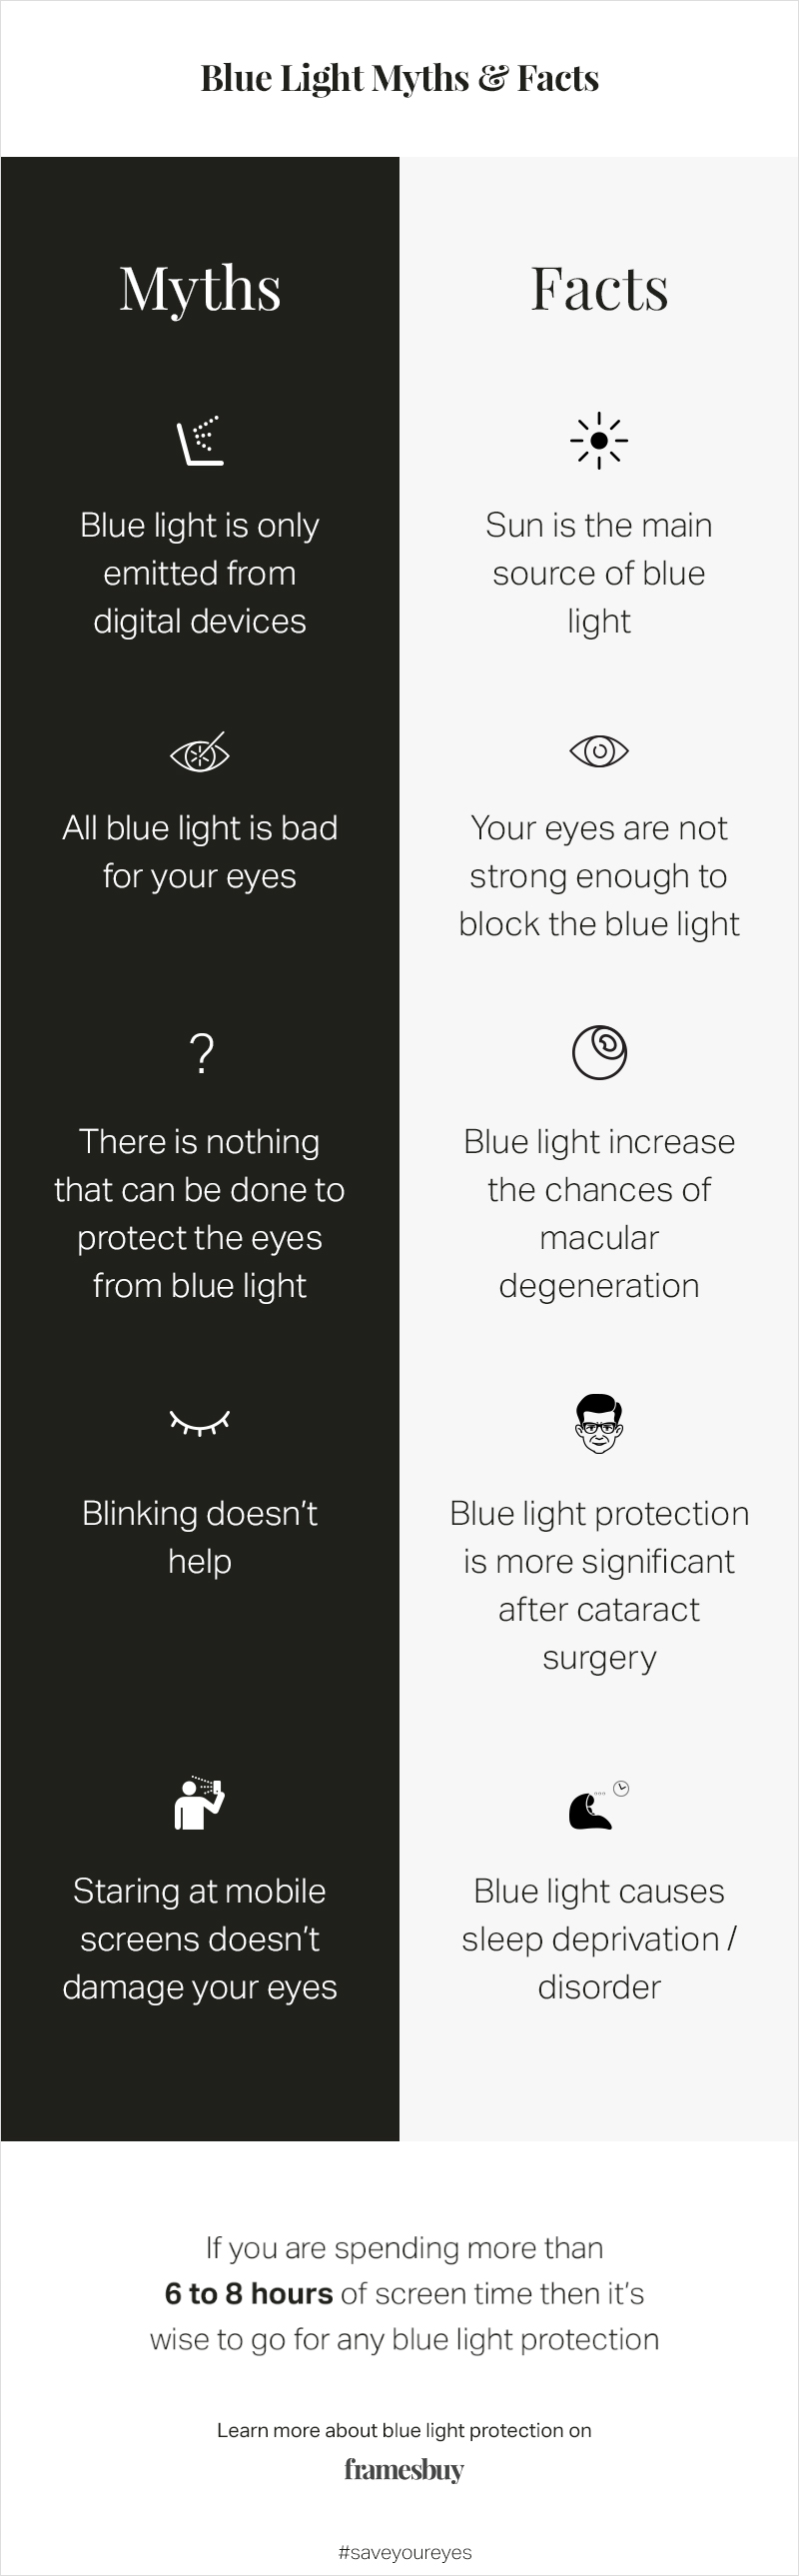 Blue Light and Your Eyes: Myths Vs Facts - Infographic